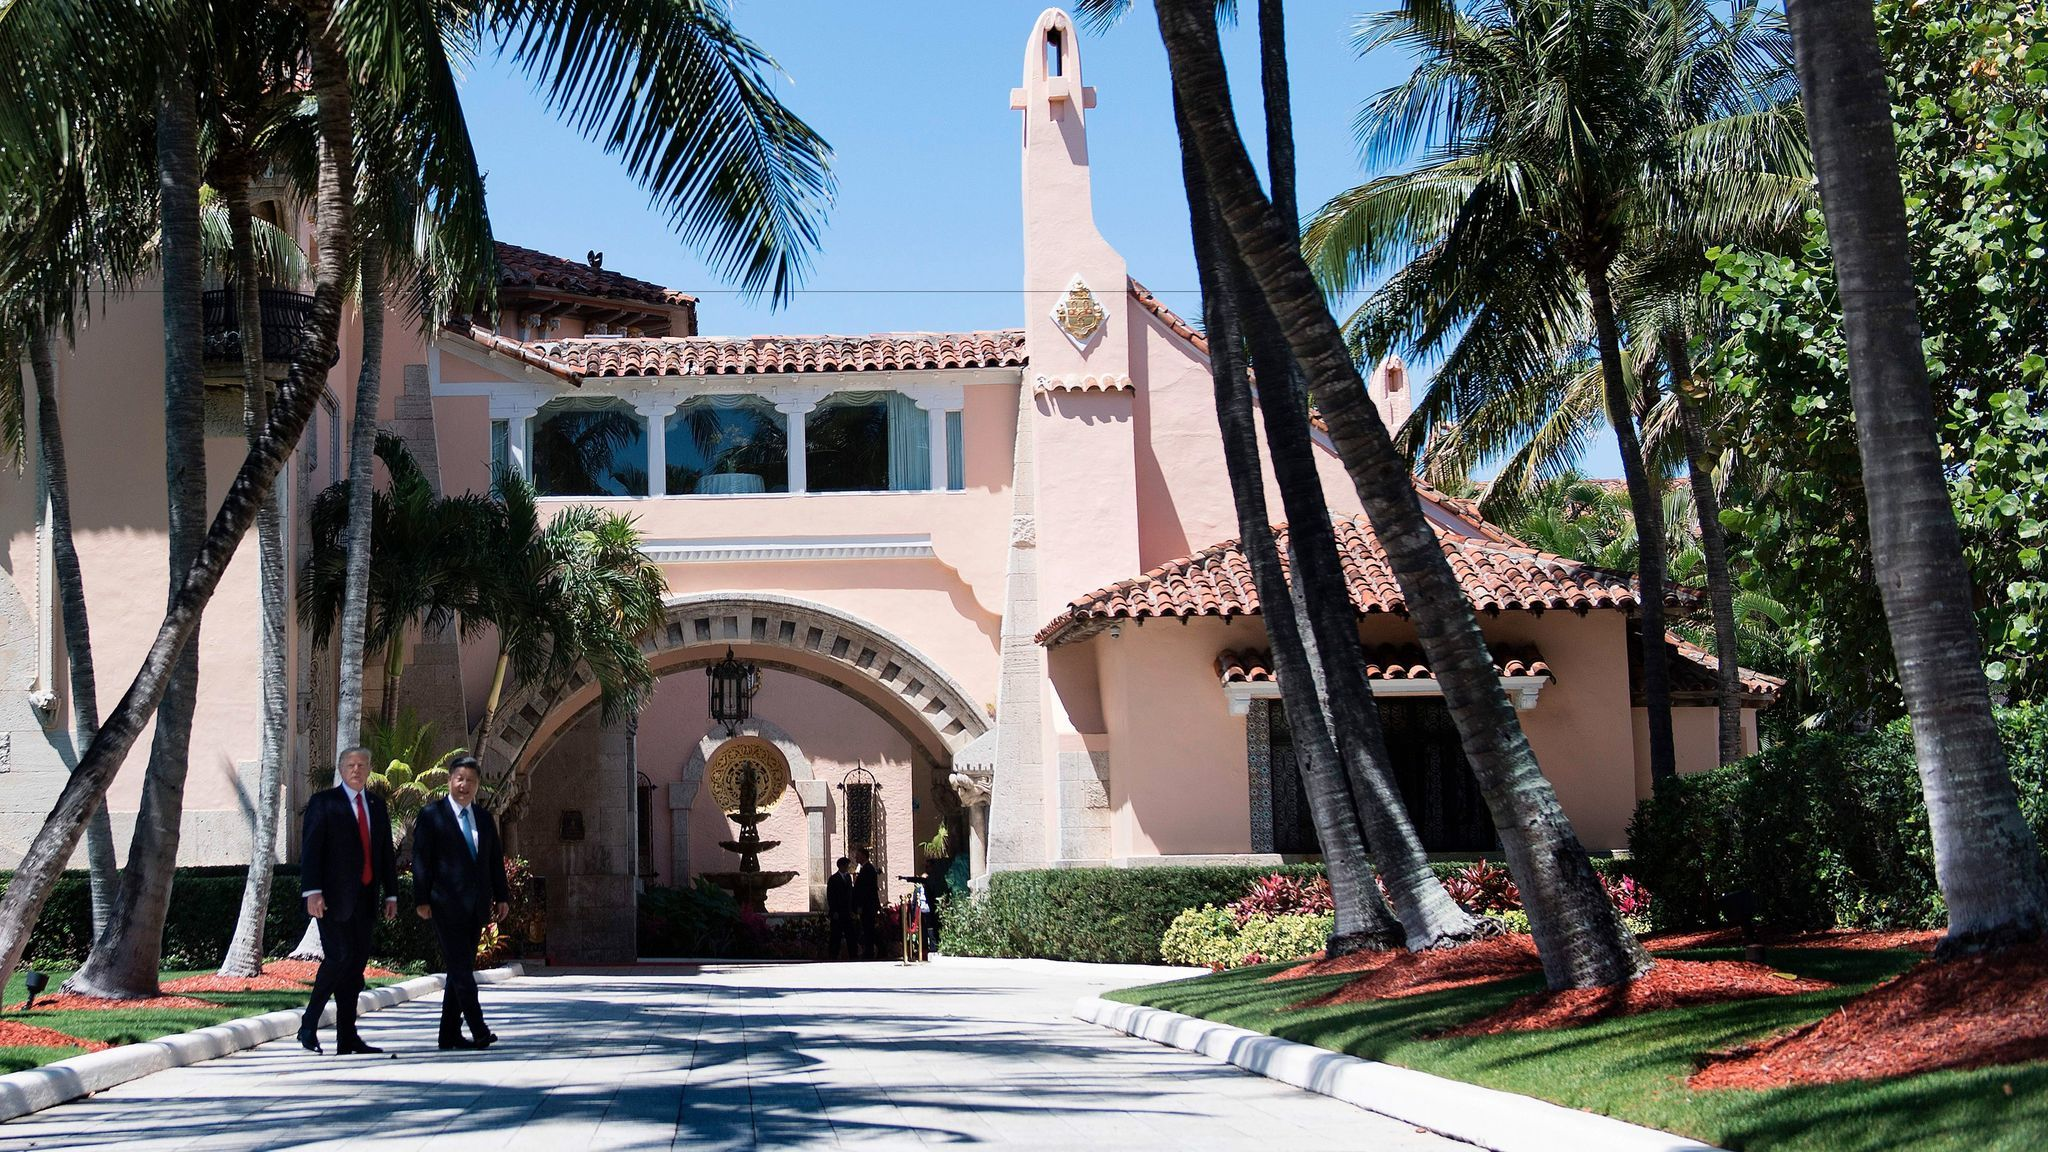 President Trump and Chinese President Xi Jinping at the Mar-a-Lago estate in West Palm Beach, Fla.